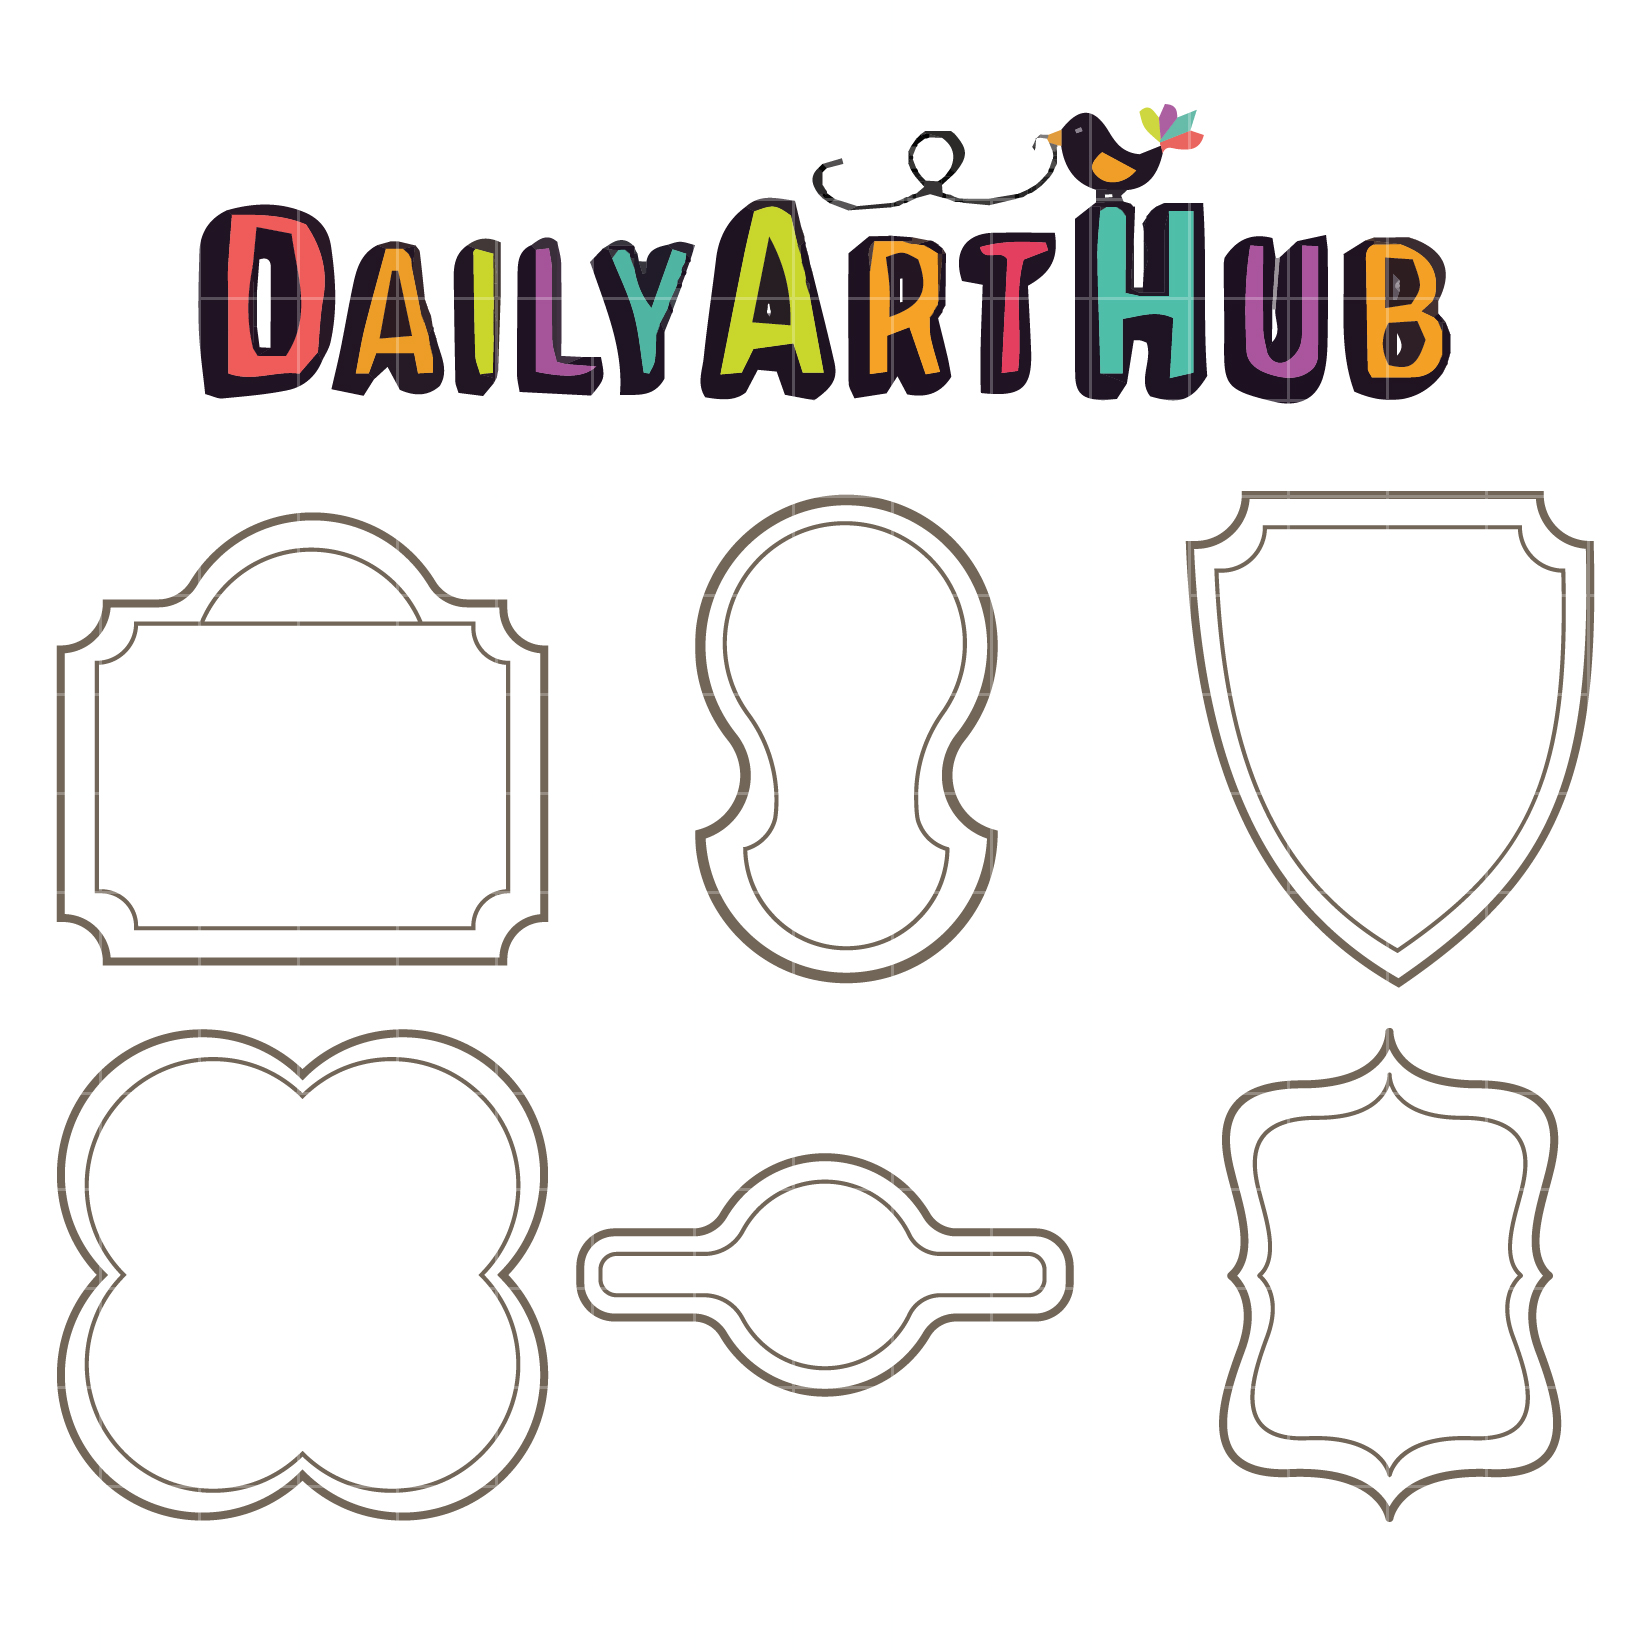 Simple Frames Clip Art Set – Daily Art Hub – Free Clip Art Everyday